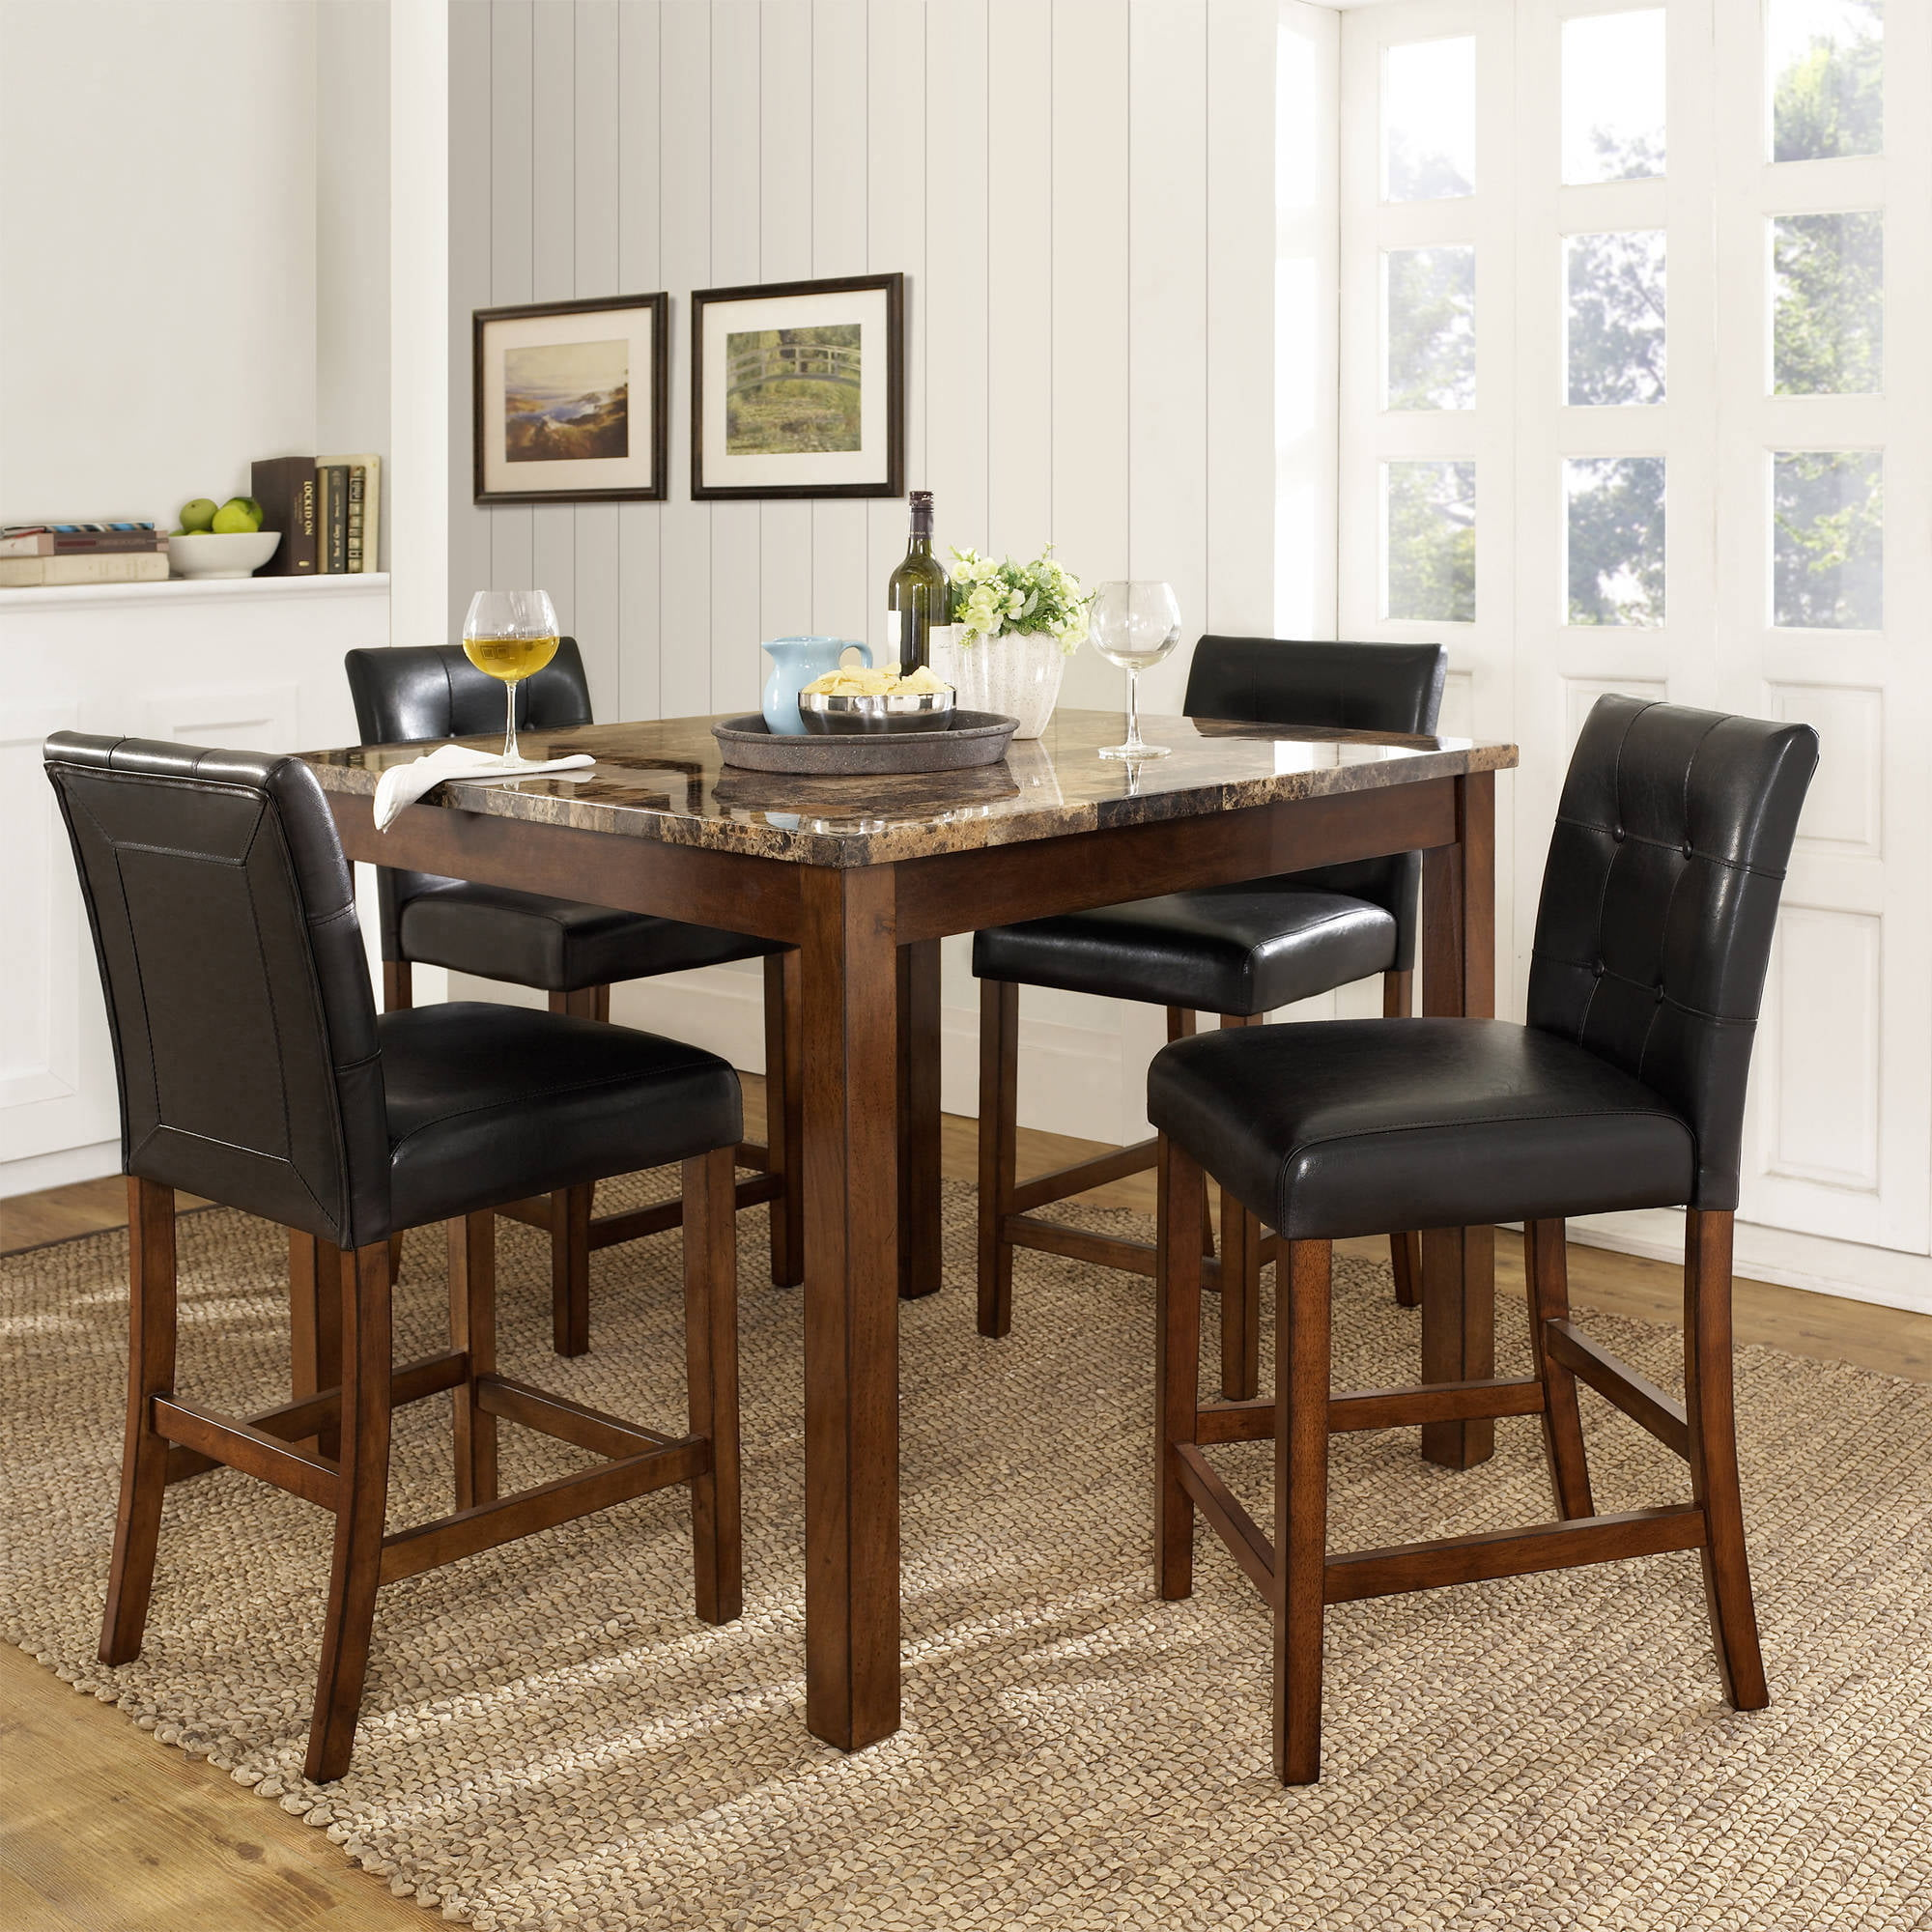 Dorel Living Andover 5 Piece Faux Marble Counter Height Dining Set Multiple Colors